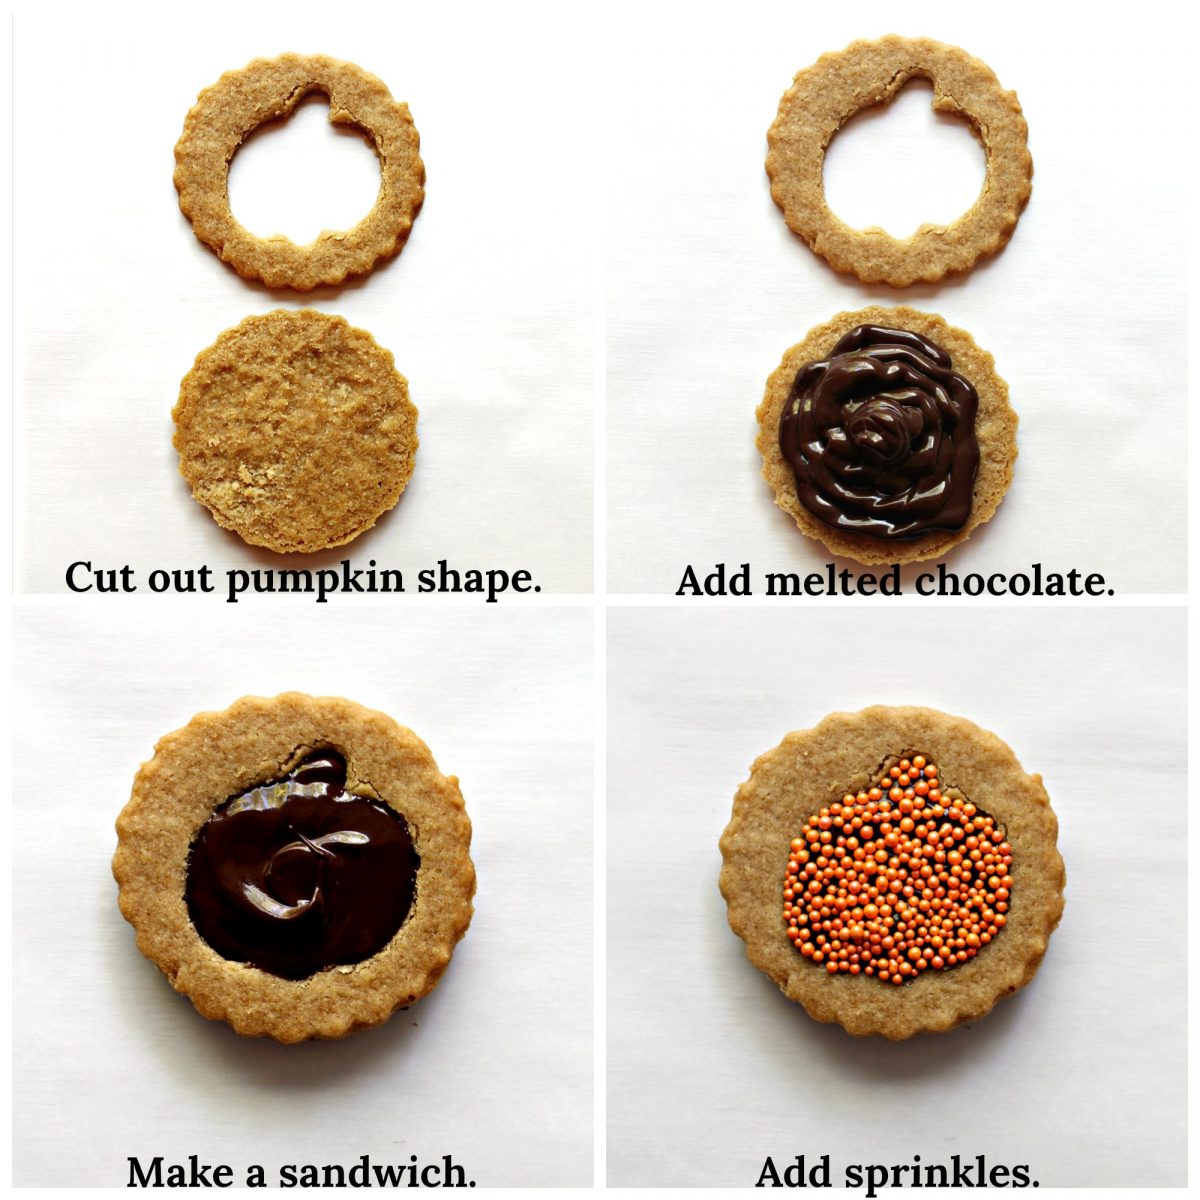 Collage showing cookie decorating process cutting out shape, adding chocolate, adding top cookie and sprinkles.